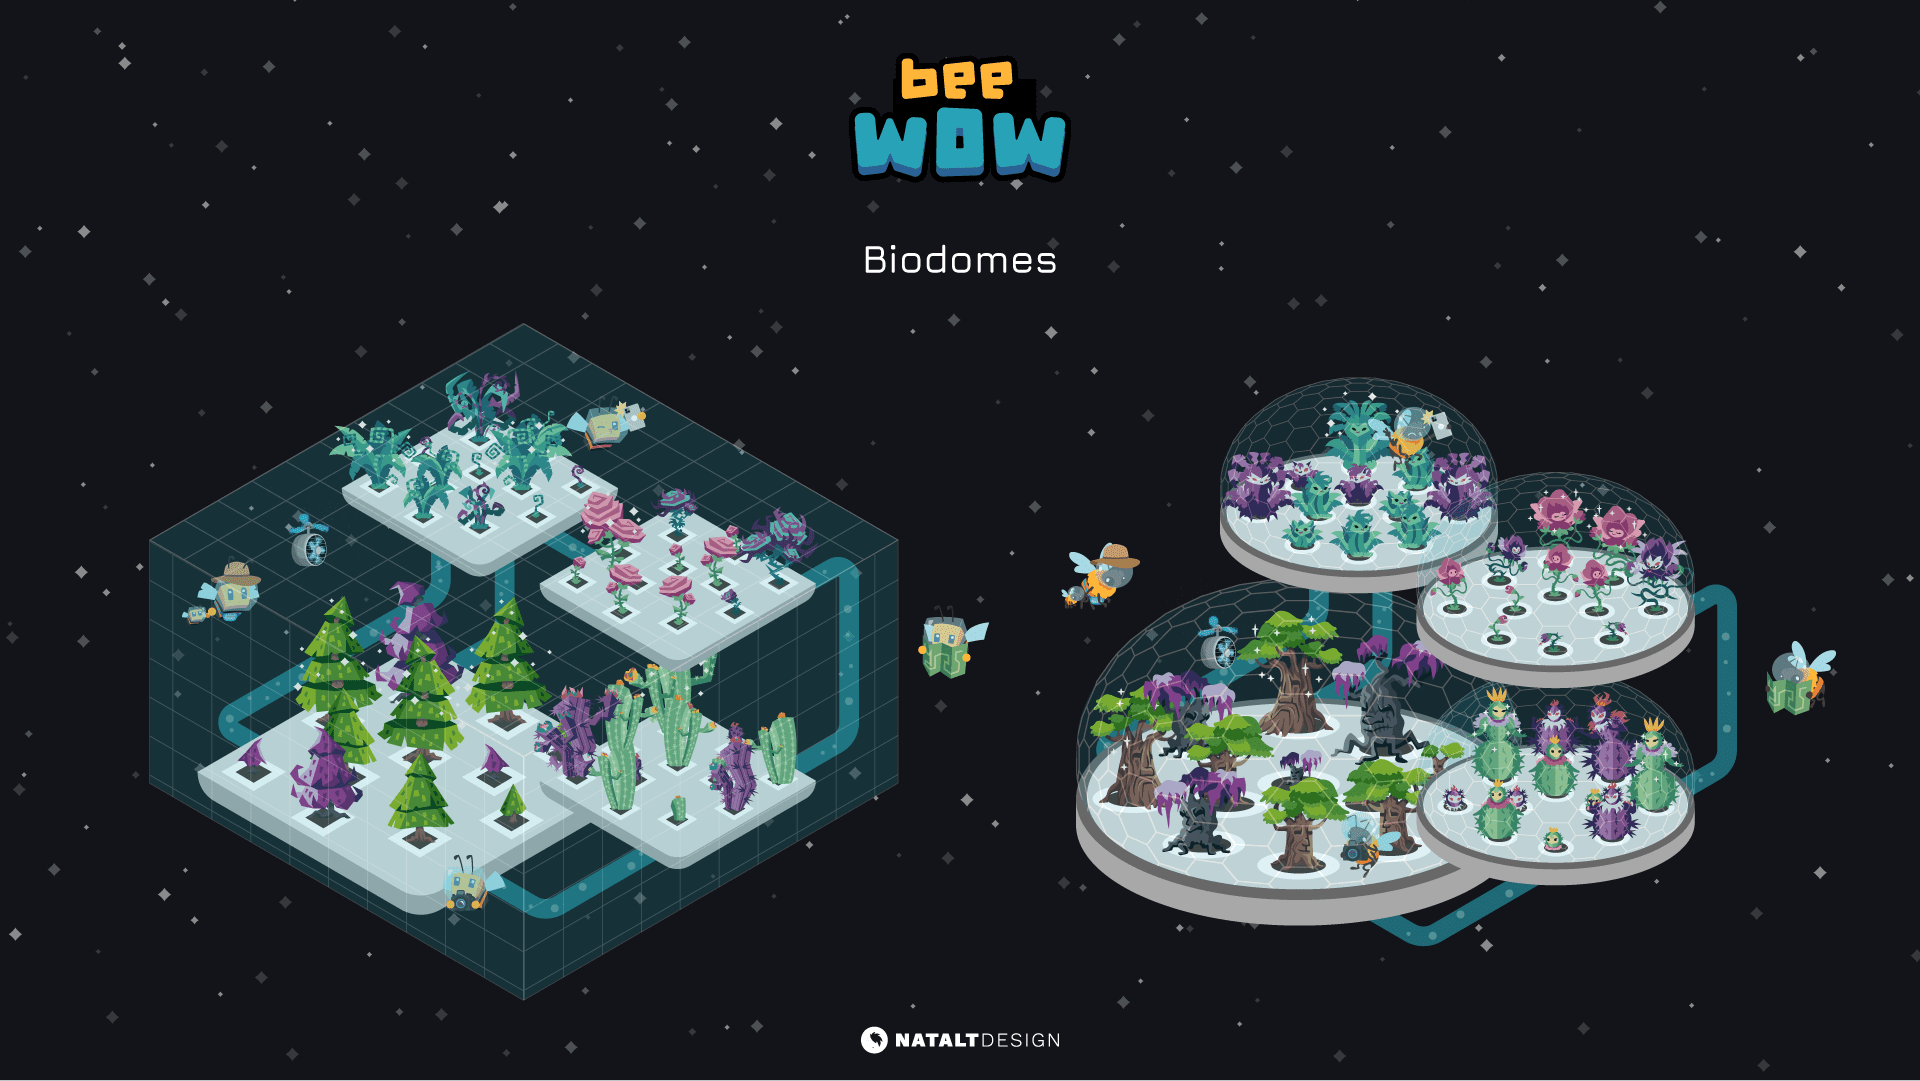 Bee Wow biodome design